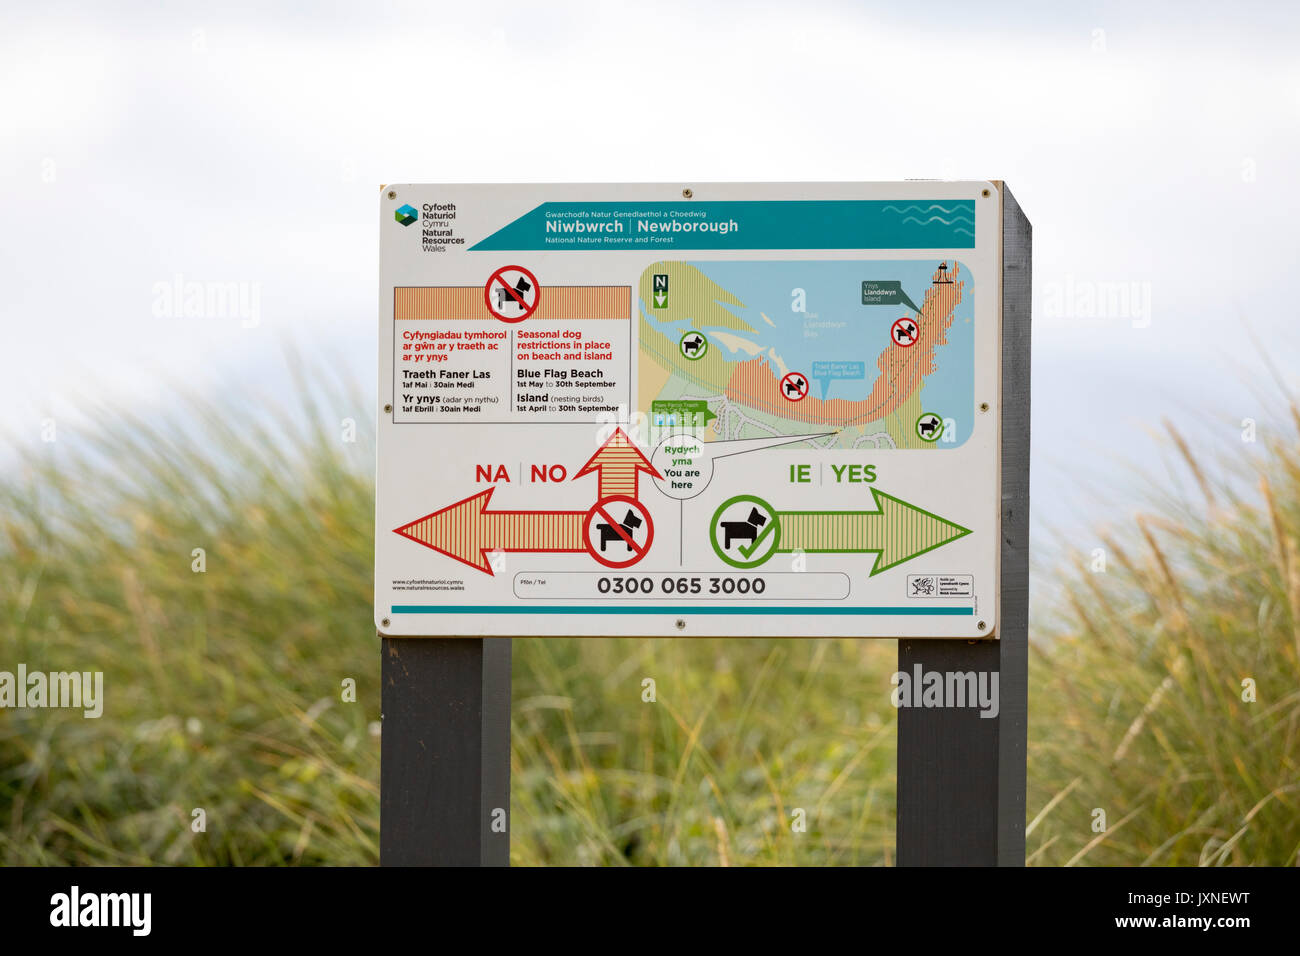 Sign showing dog friendly and dog restriciton areas on Newborough Beach with arrows to show direction, Newborough, Anglesey, Wales, UK - Stock Image